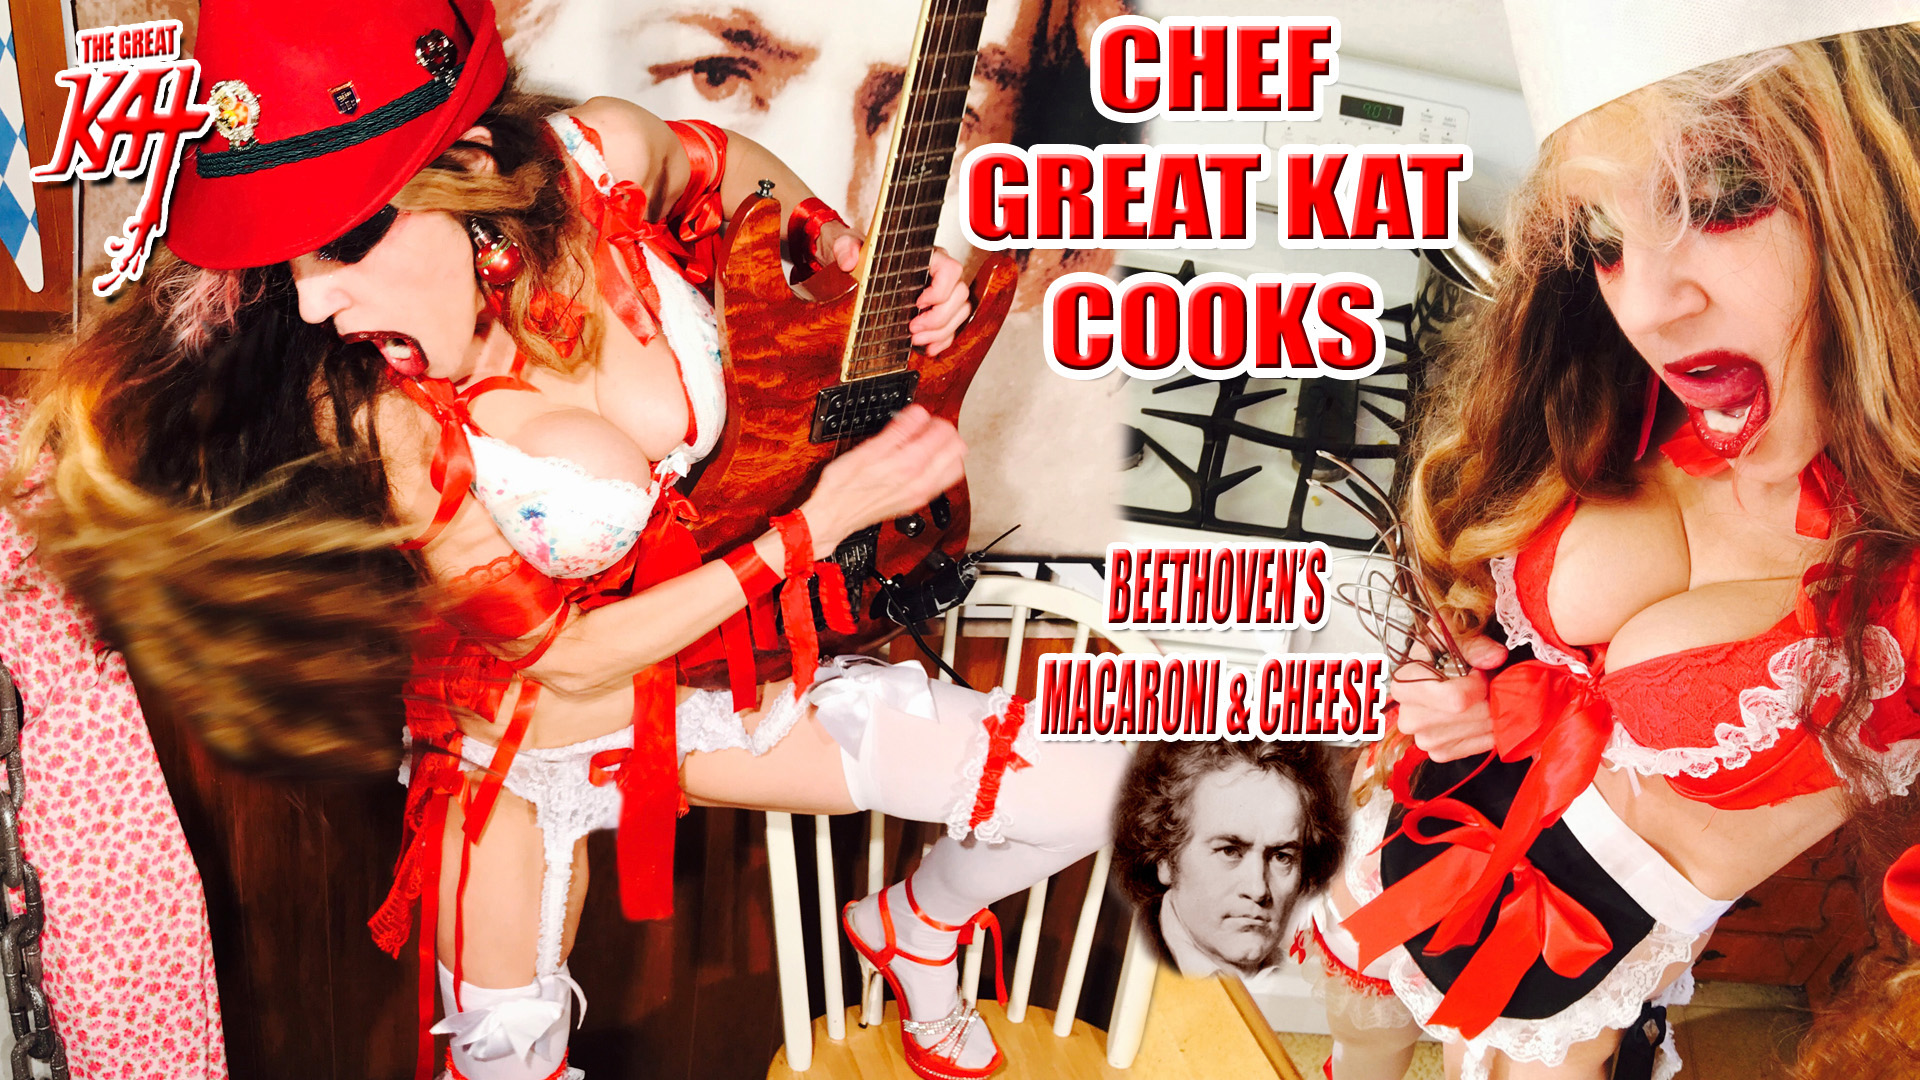 CHEF GREAT KAT COOKS BEETHOVEN'S MACARONI & CHEESE